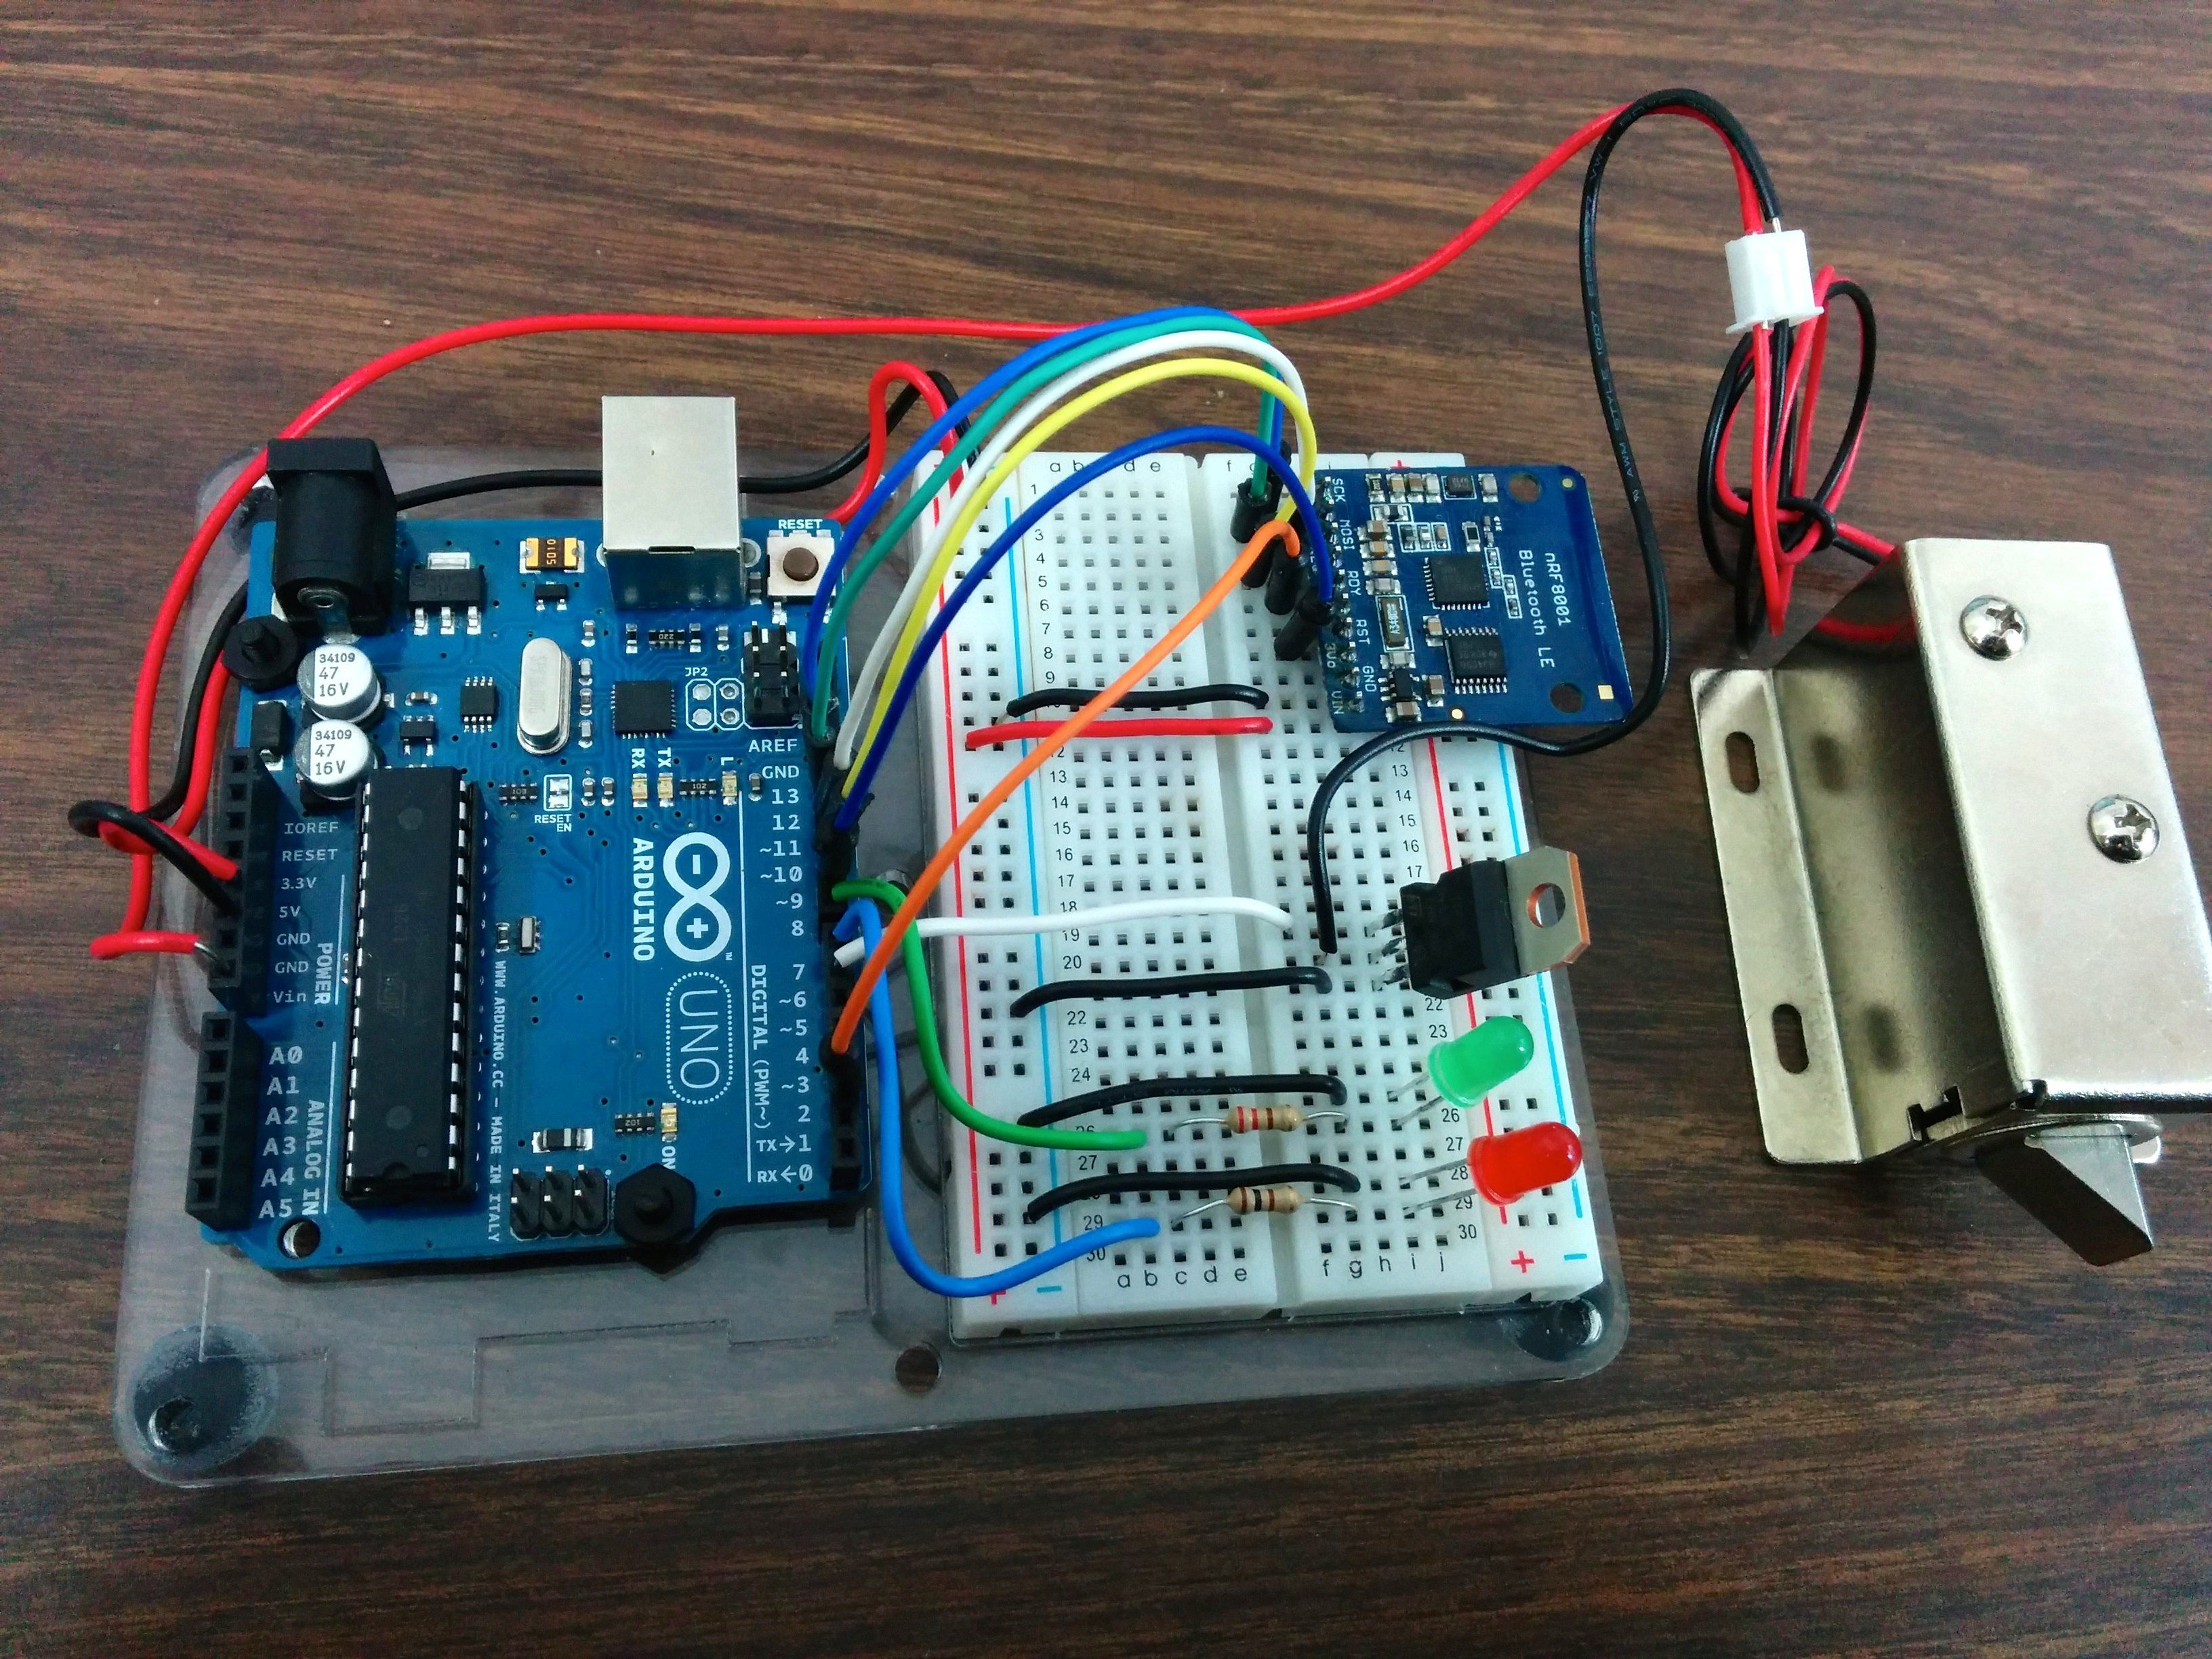 Controlling A Lock With An Arduino And Bluetooth Le In 2018 Project 42 Breadboarded Circuit